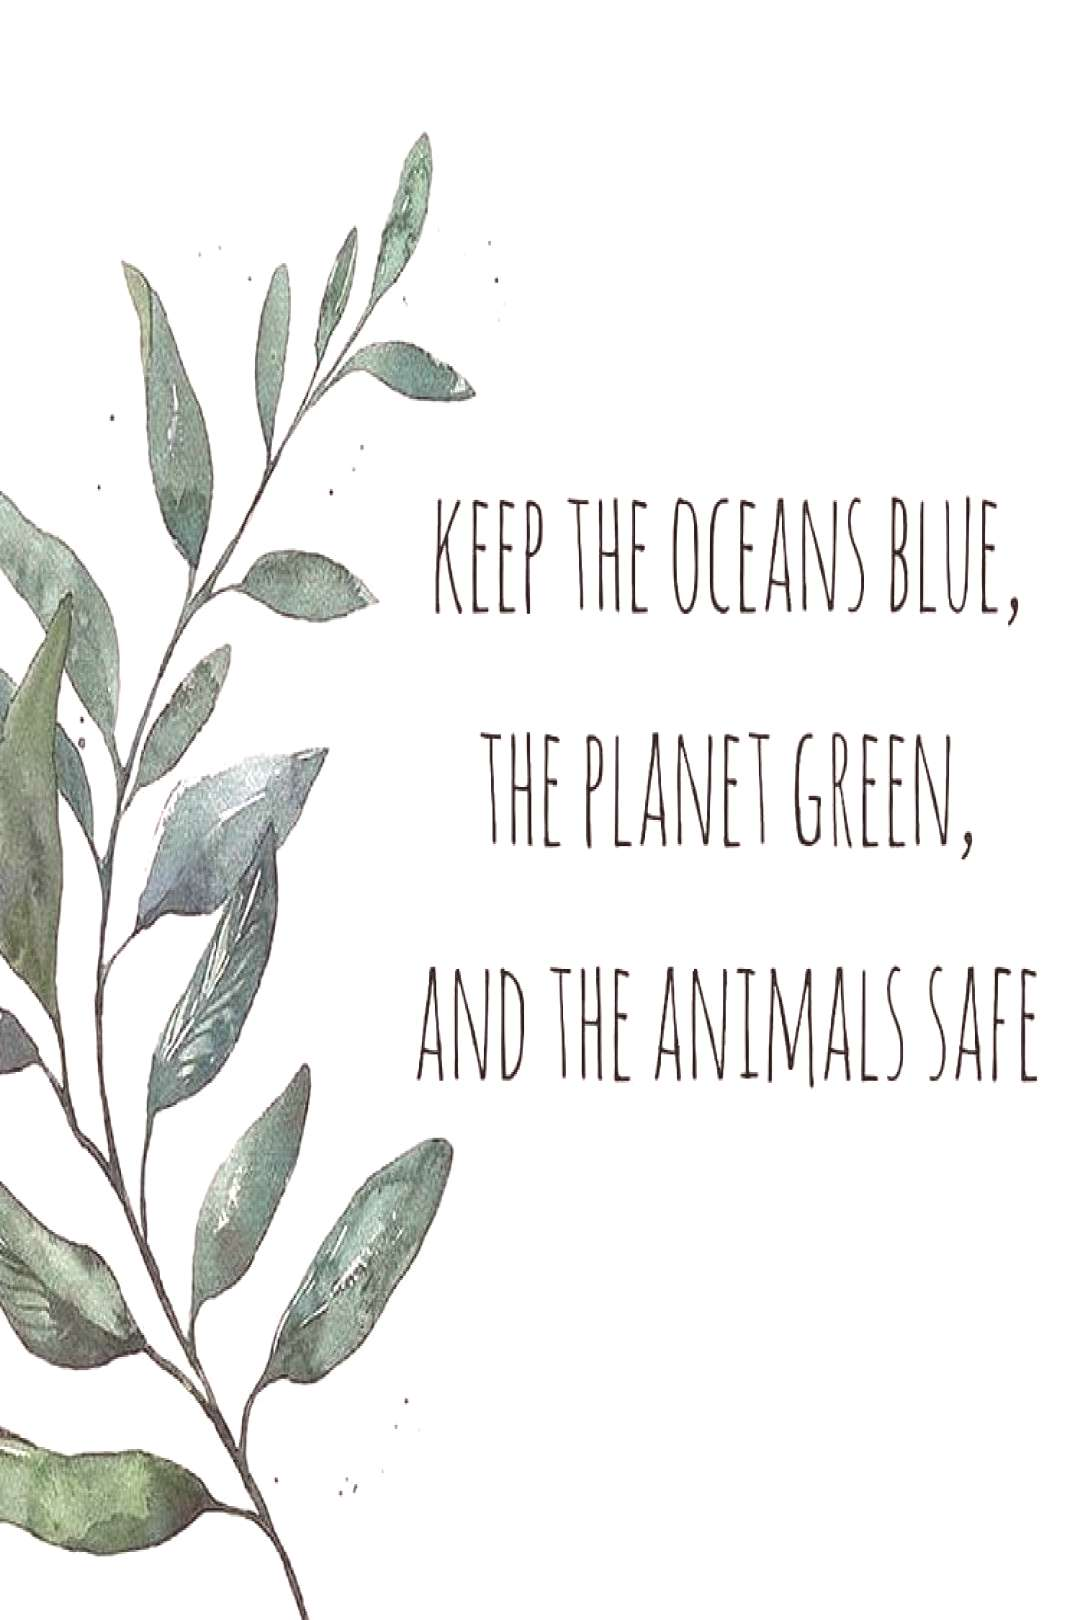 It's our responsibility to protect our planet. Together as a collective we have the capability of